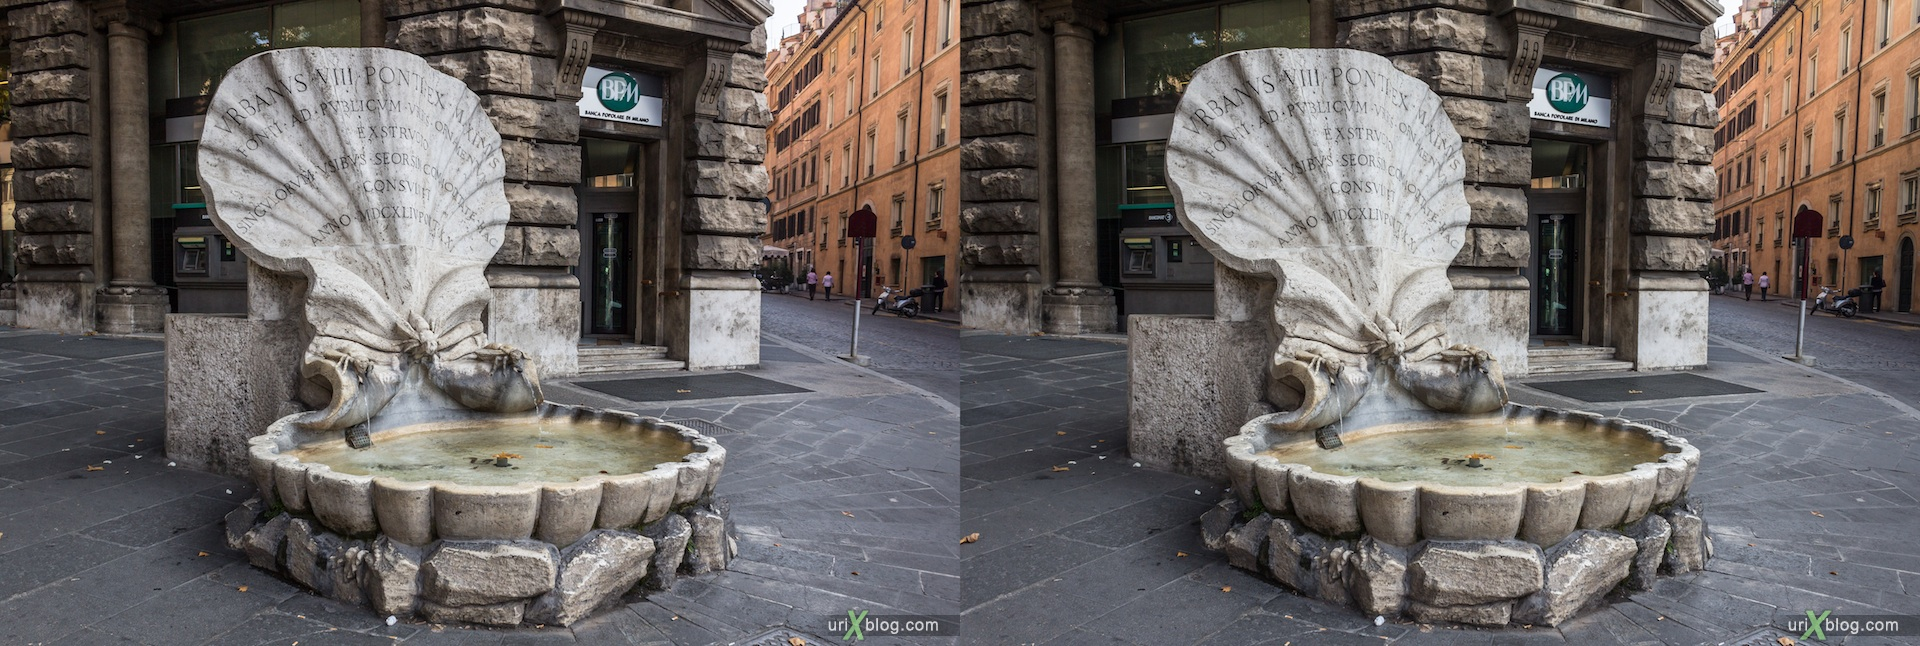 2012, fountain of Bees, Barberini square, Rome, Italy, 3D, stereo pair, cross-eyed, crossview, cross view stereo pair